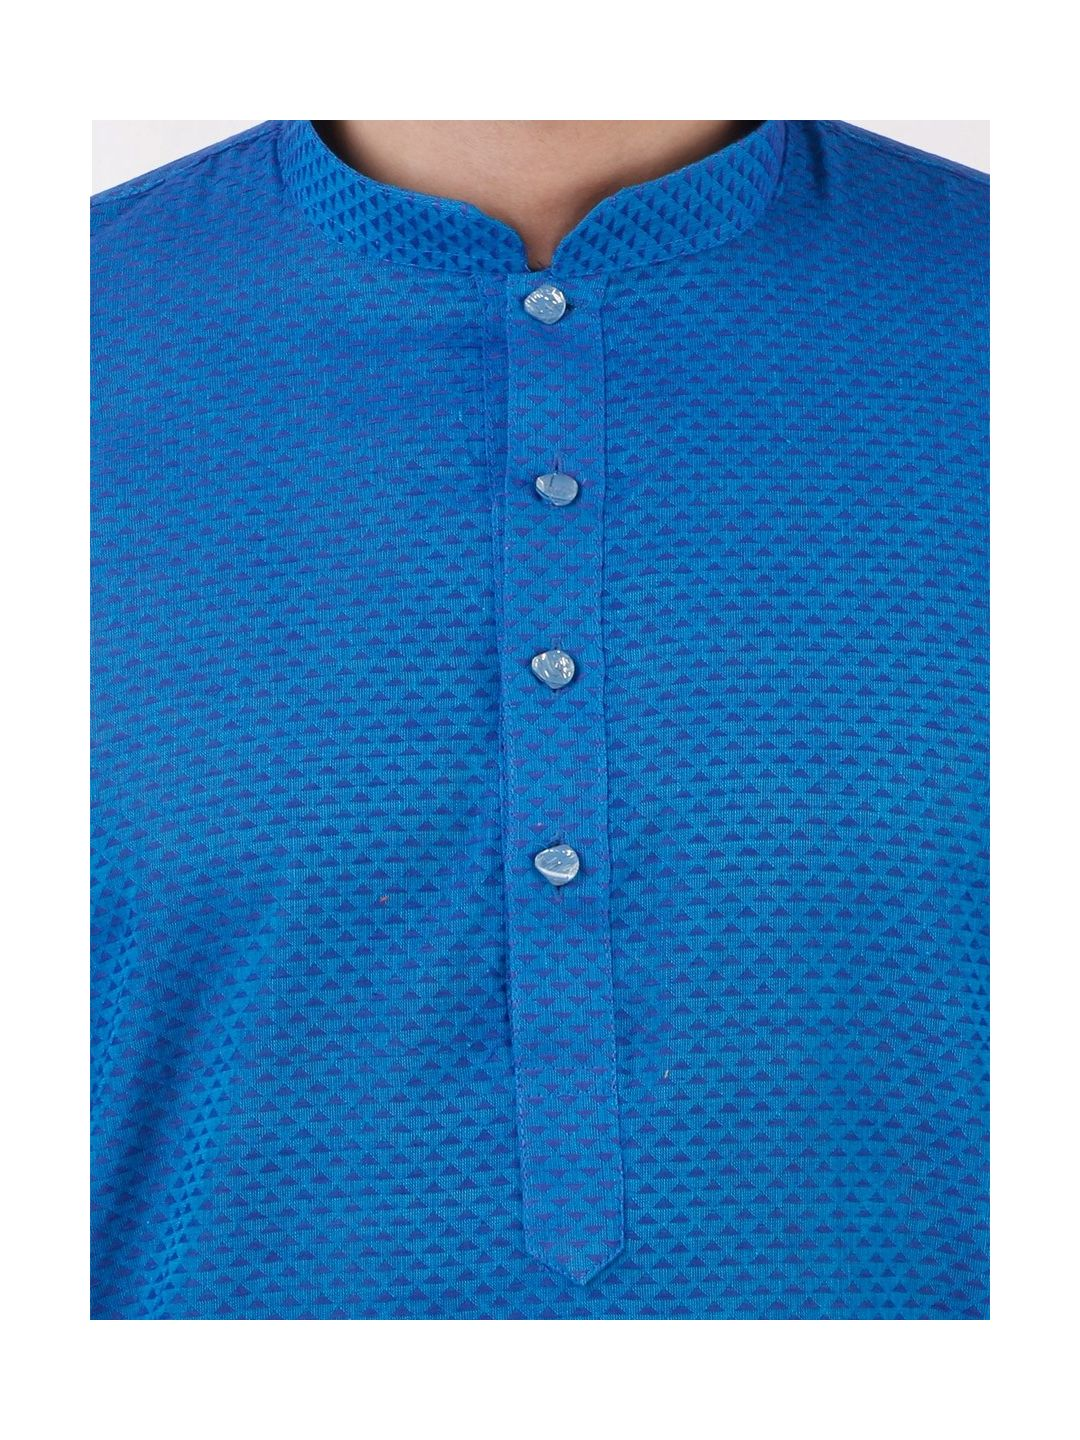 Blue Woven Geometric Design Handloom Cotton Kurta